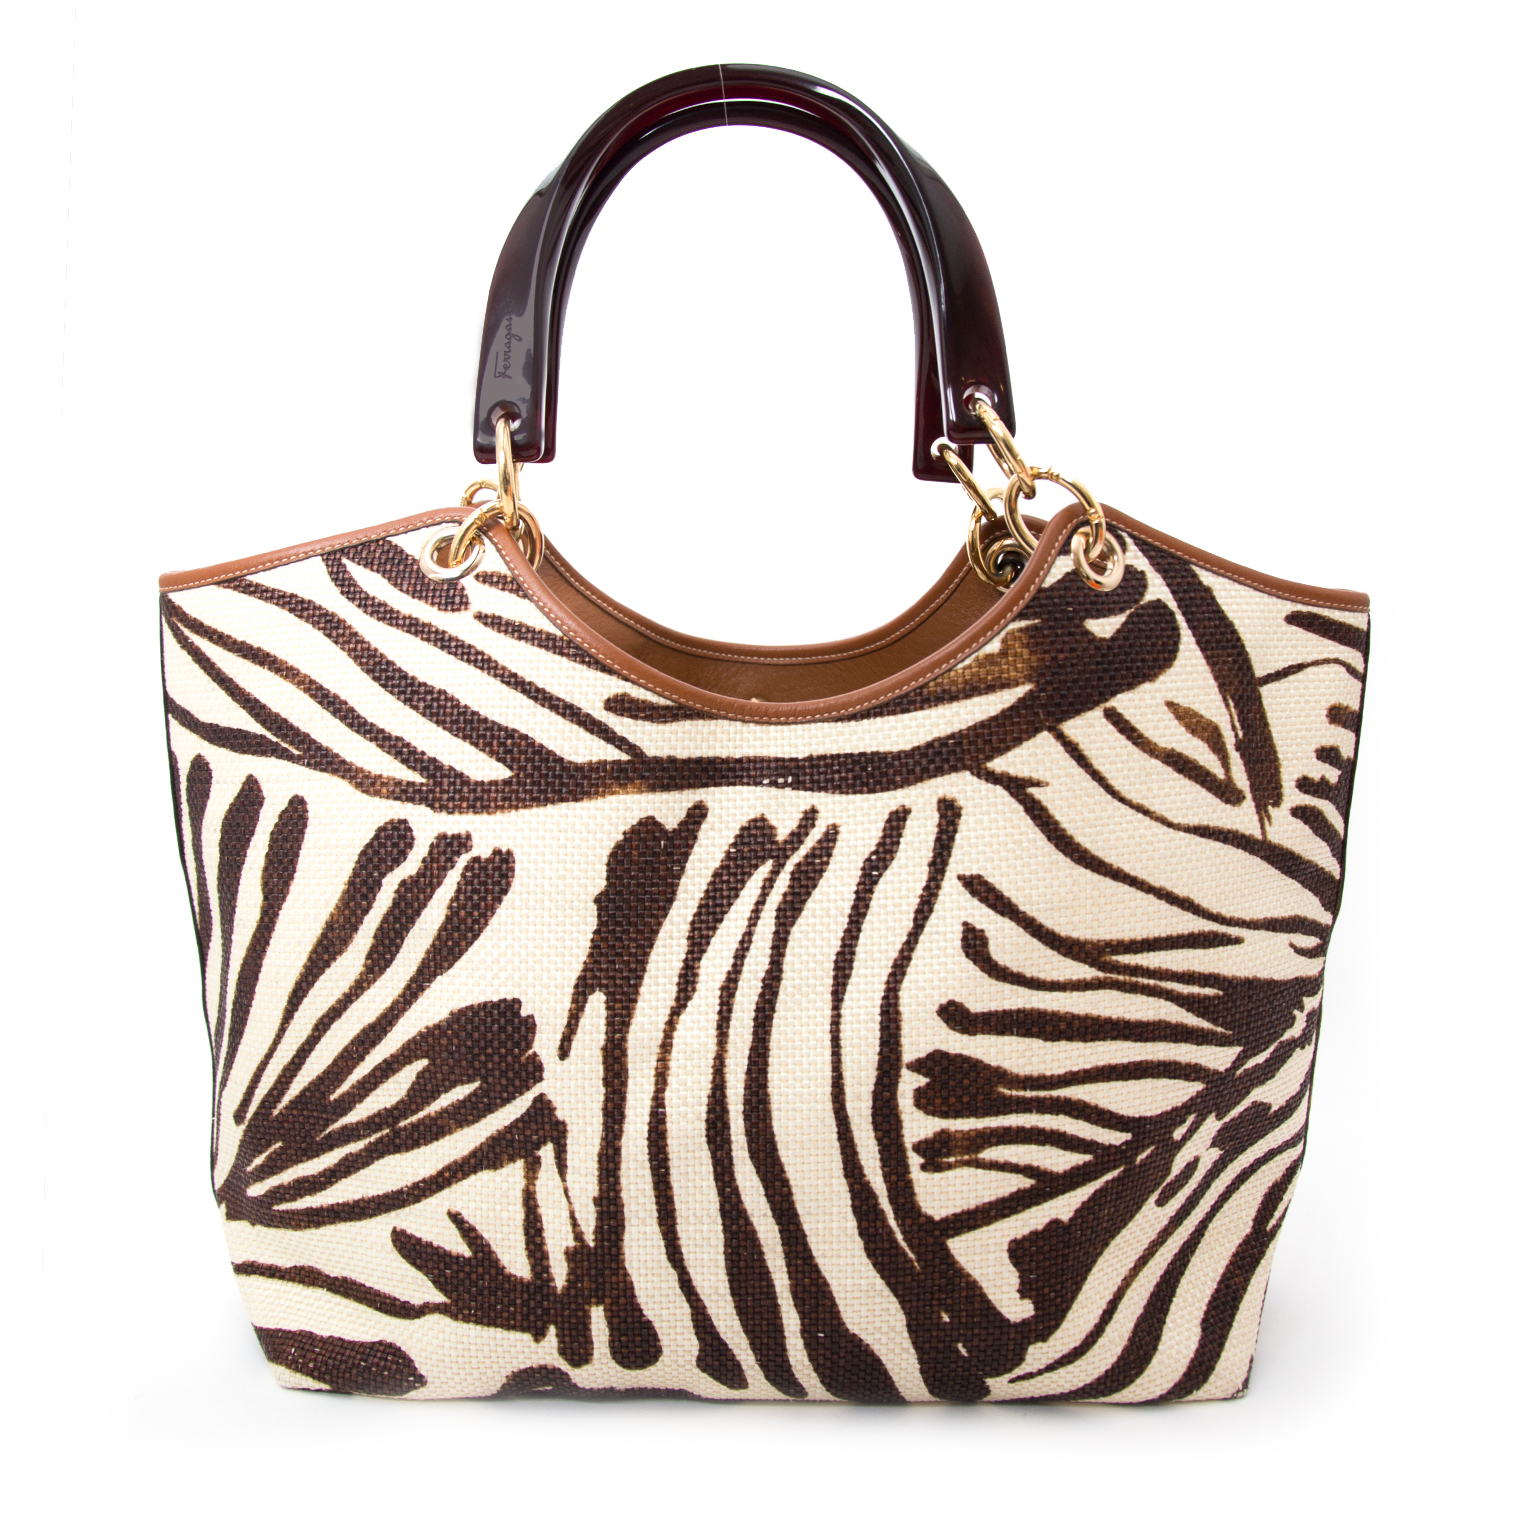 We buy and sell your secondhand designer items from the big brands such as Salvatore Ferragamo Animal Print Shopper